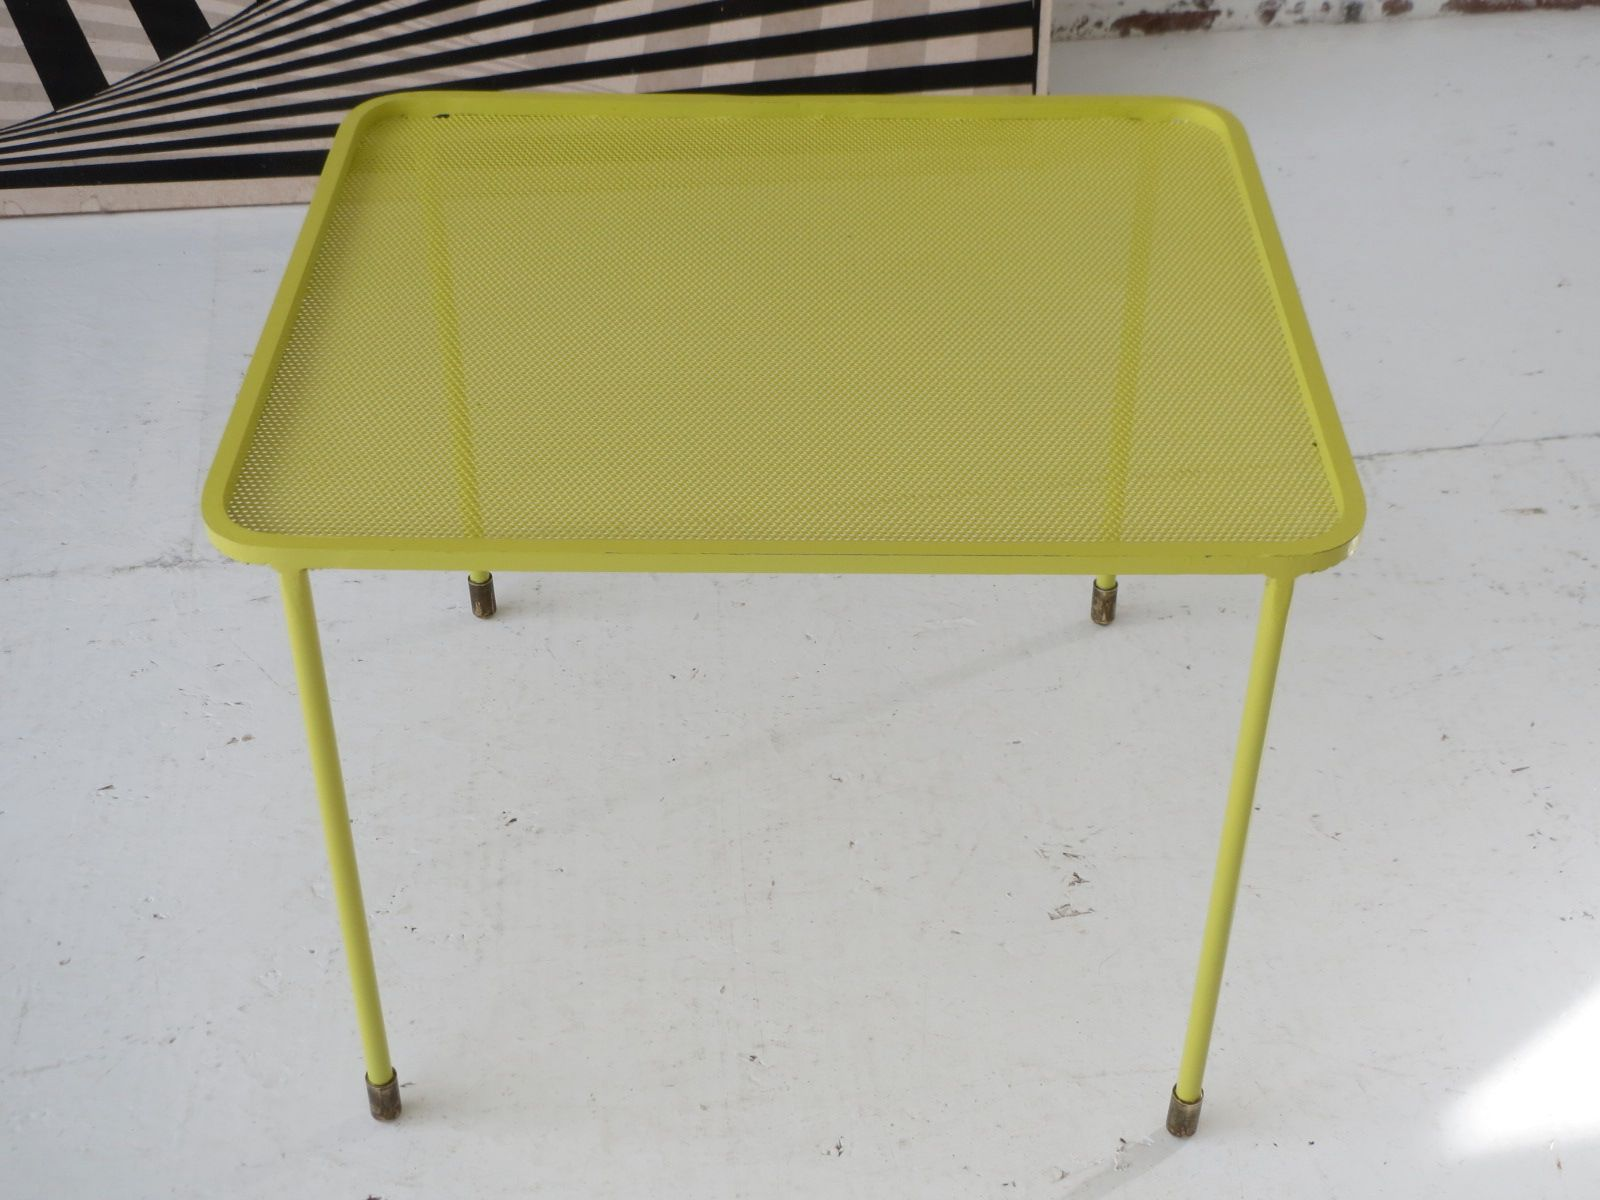 Perforated Metal Coffee Table from Mathieu Matégot 1950s for sale